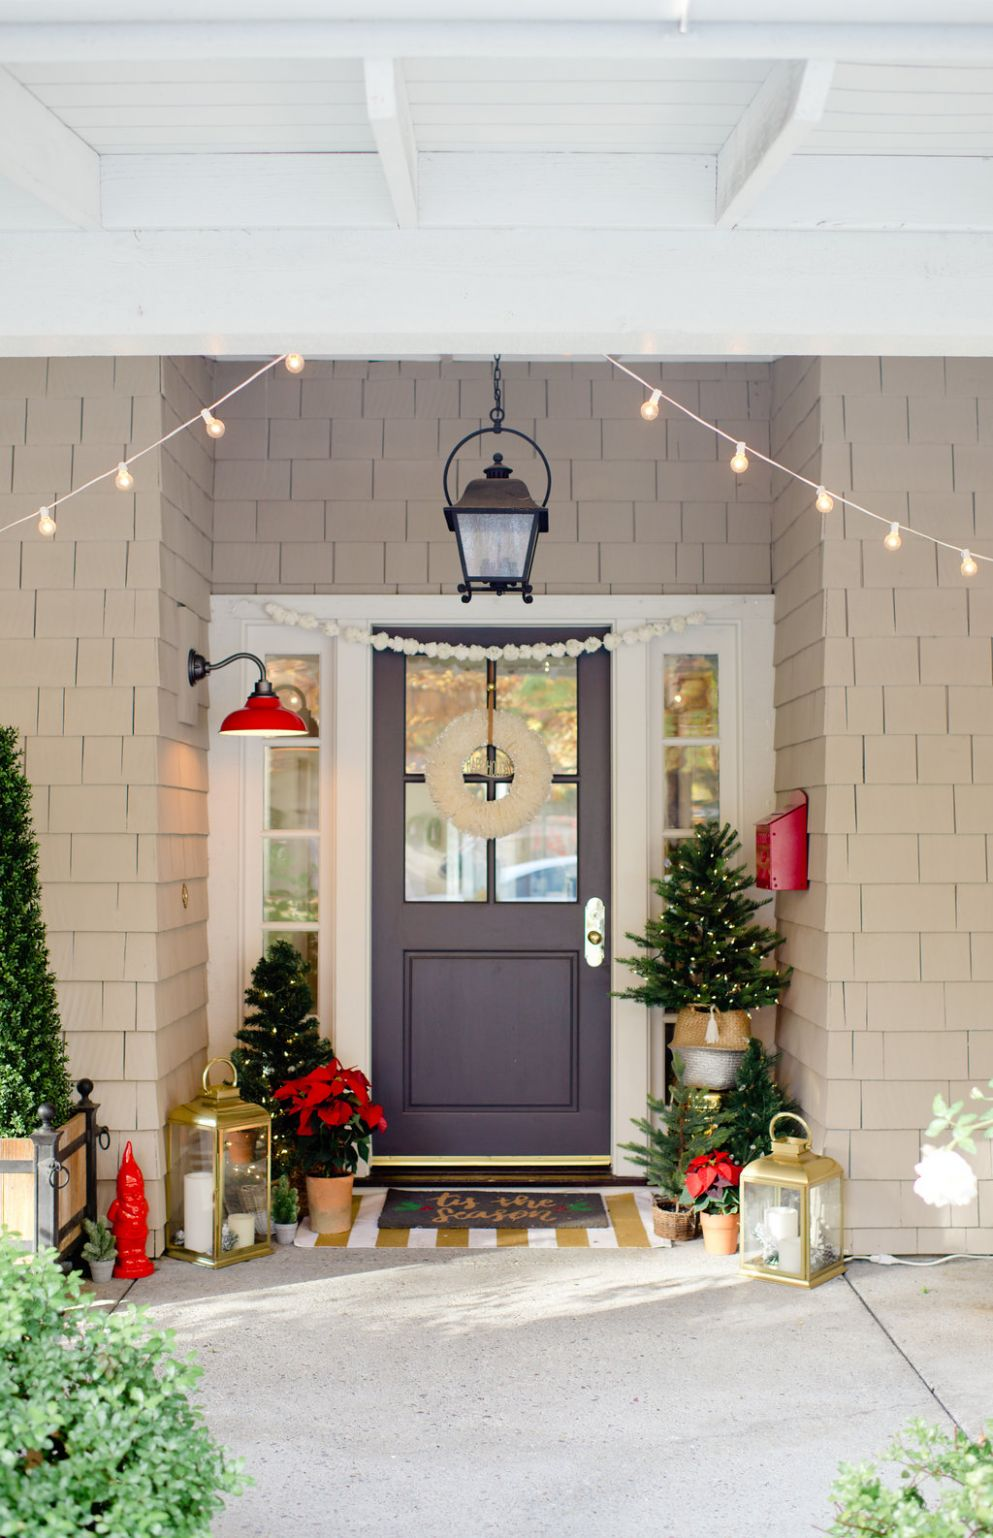 Front Porch Decorating Ideas: 12 months of Inspiration - Modern Glam